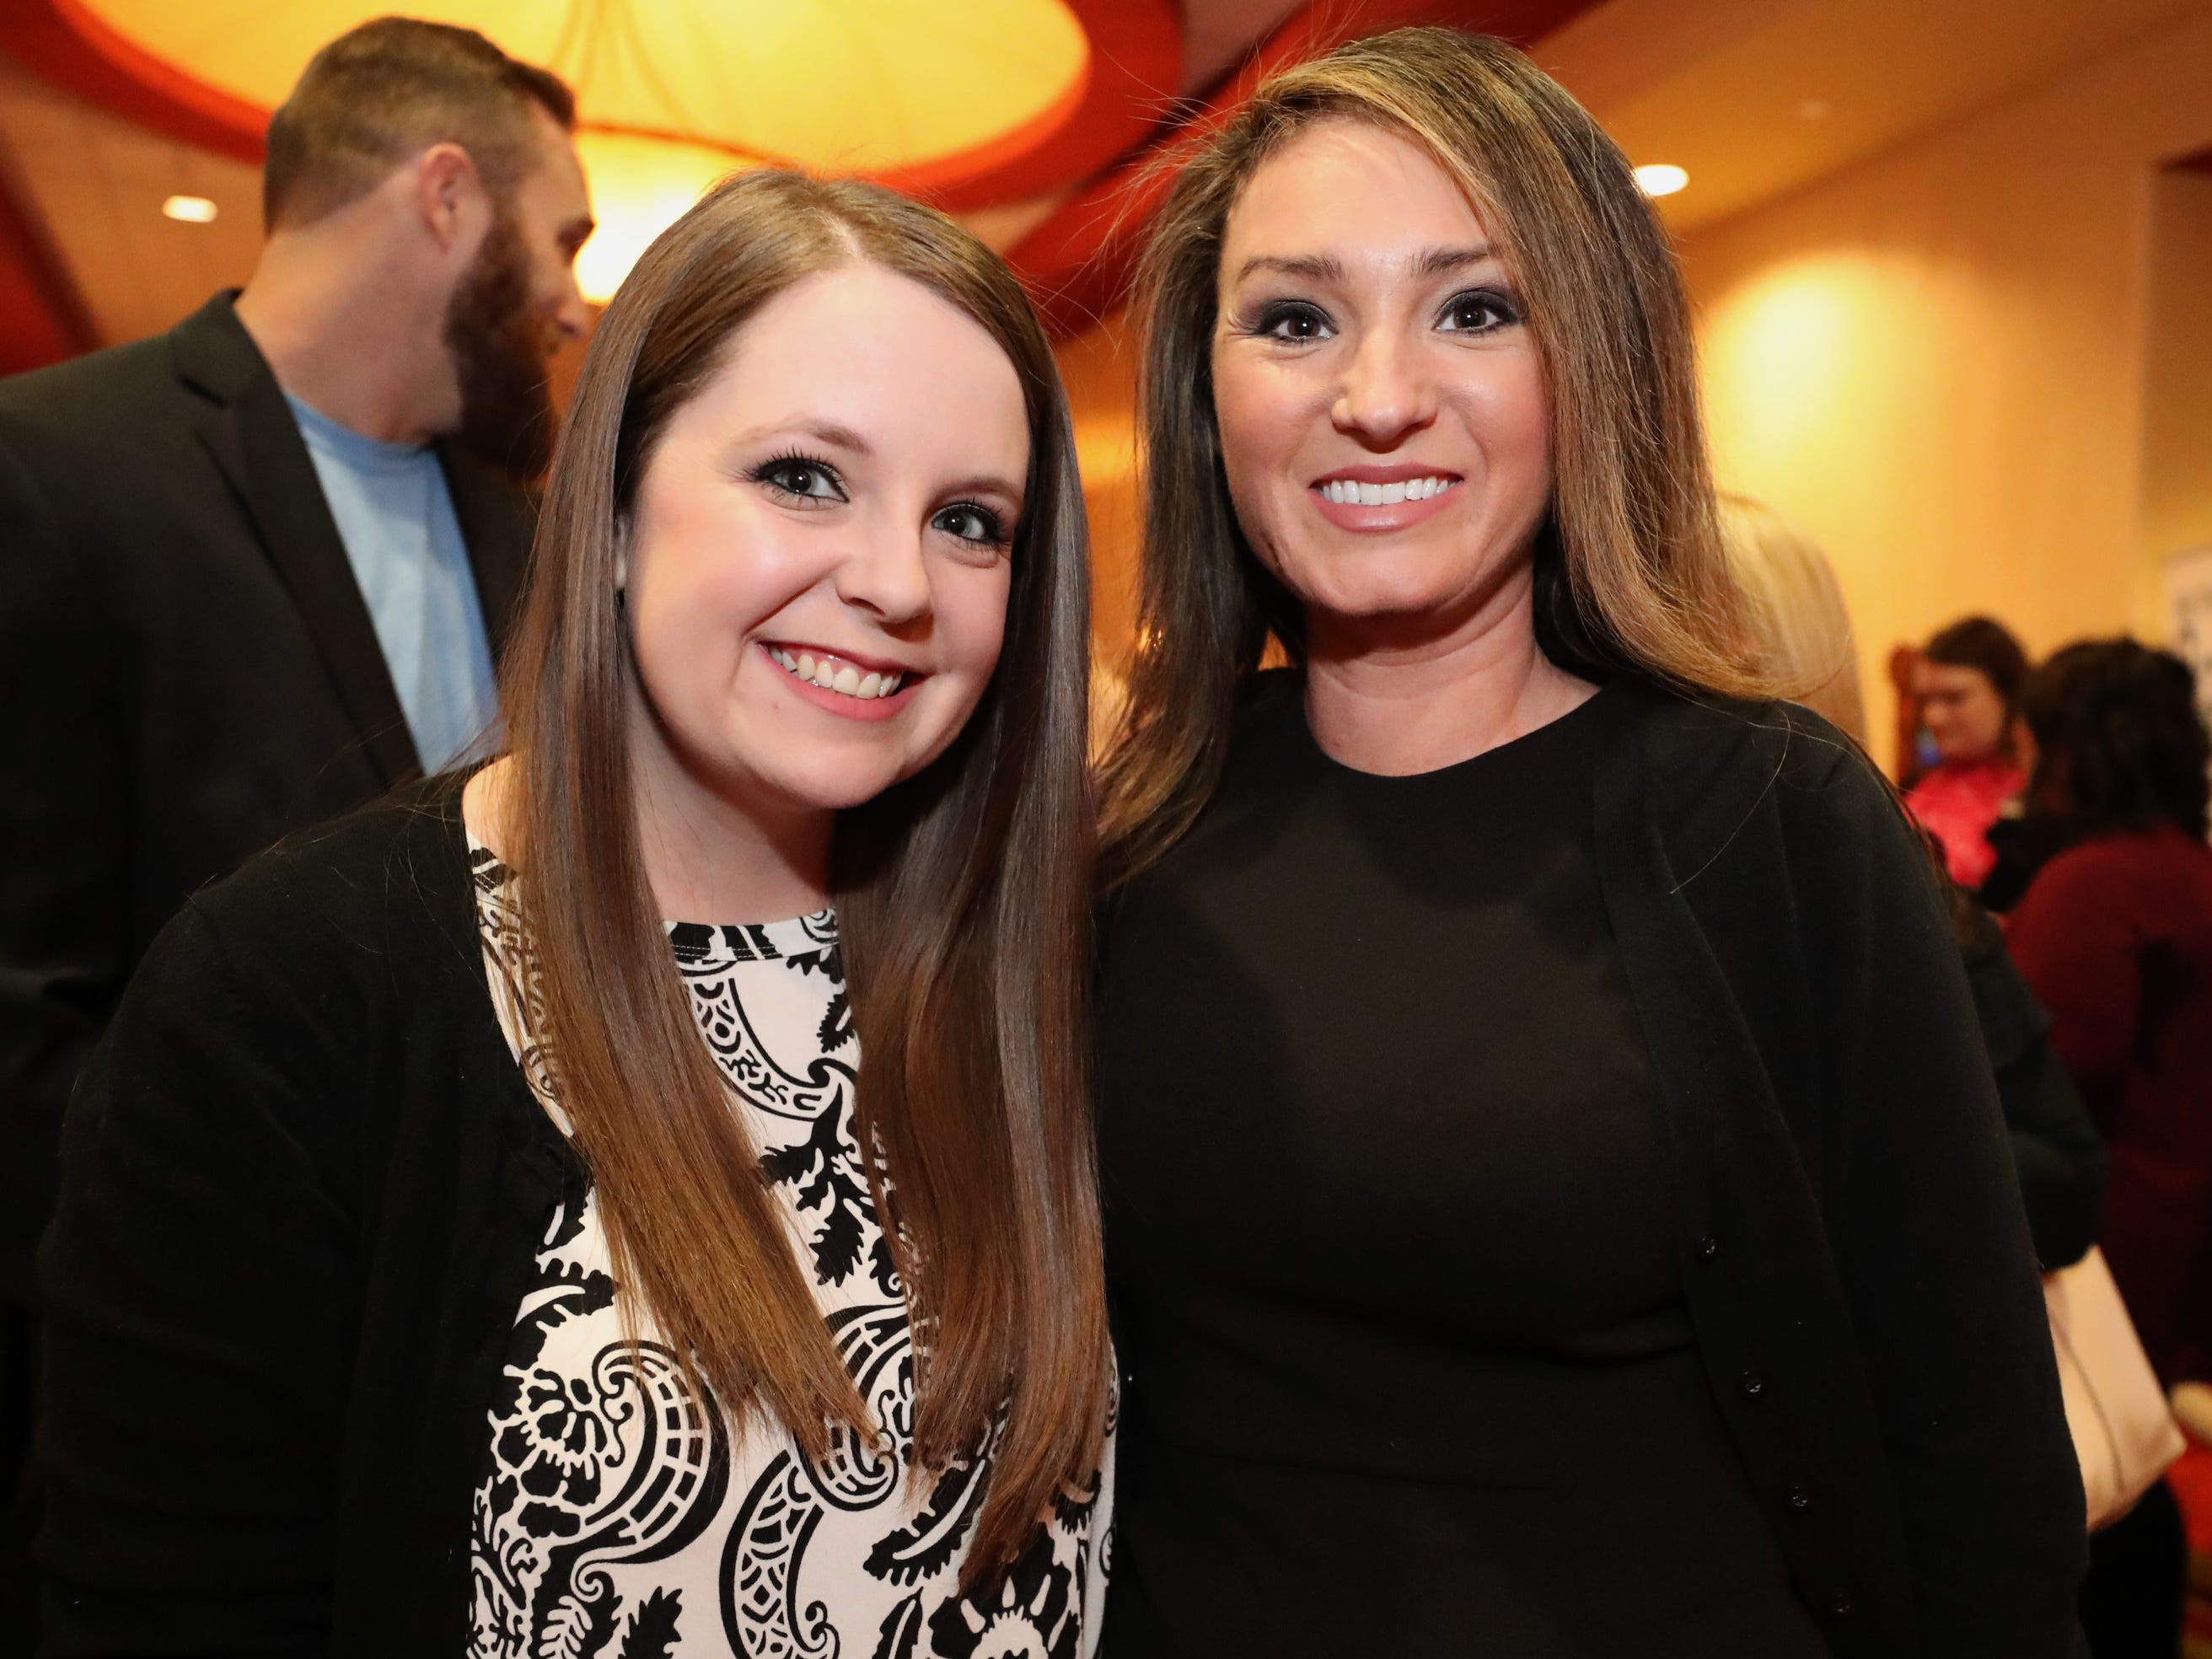 Molly Smith, left and Amanda Clark at Murfreesboro Magazine's 2019 Women in Business Luncheon on Tuesday, March 12, 2019, at the Embassy Suites Murfreesboro.